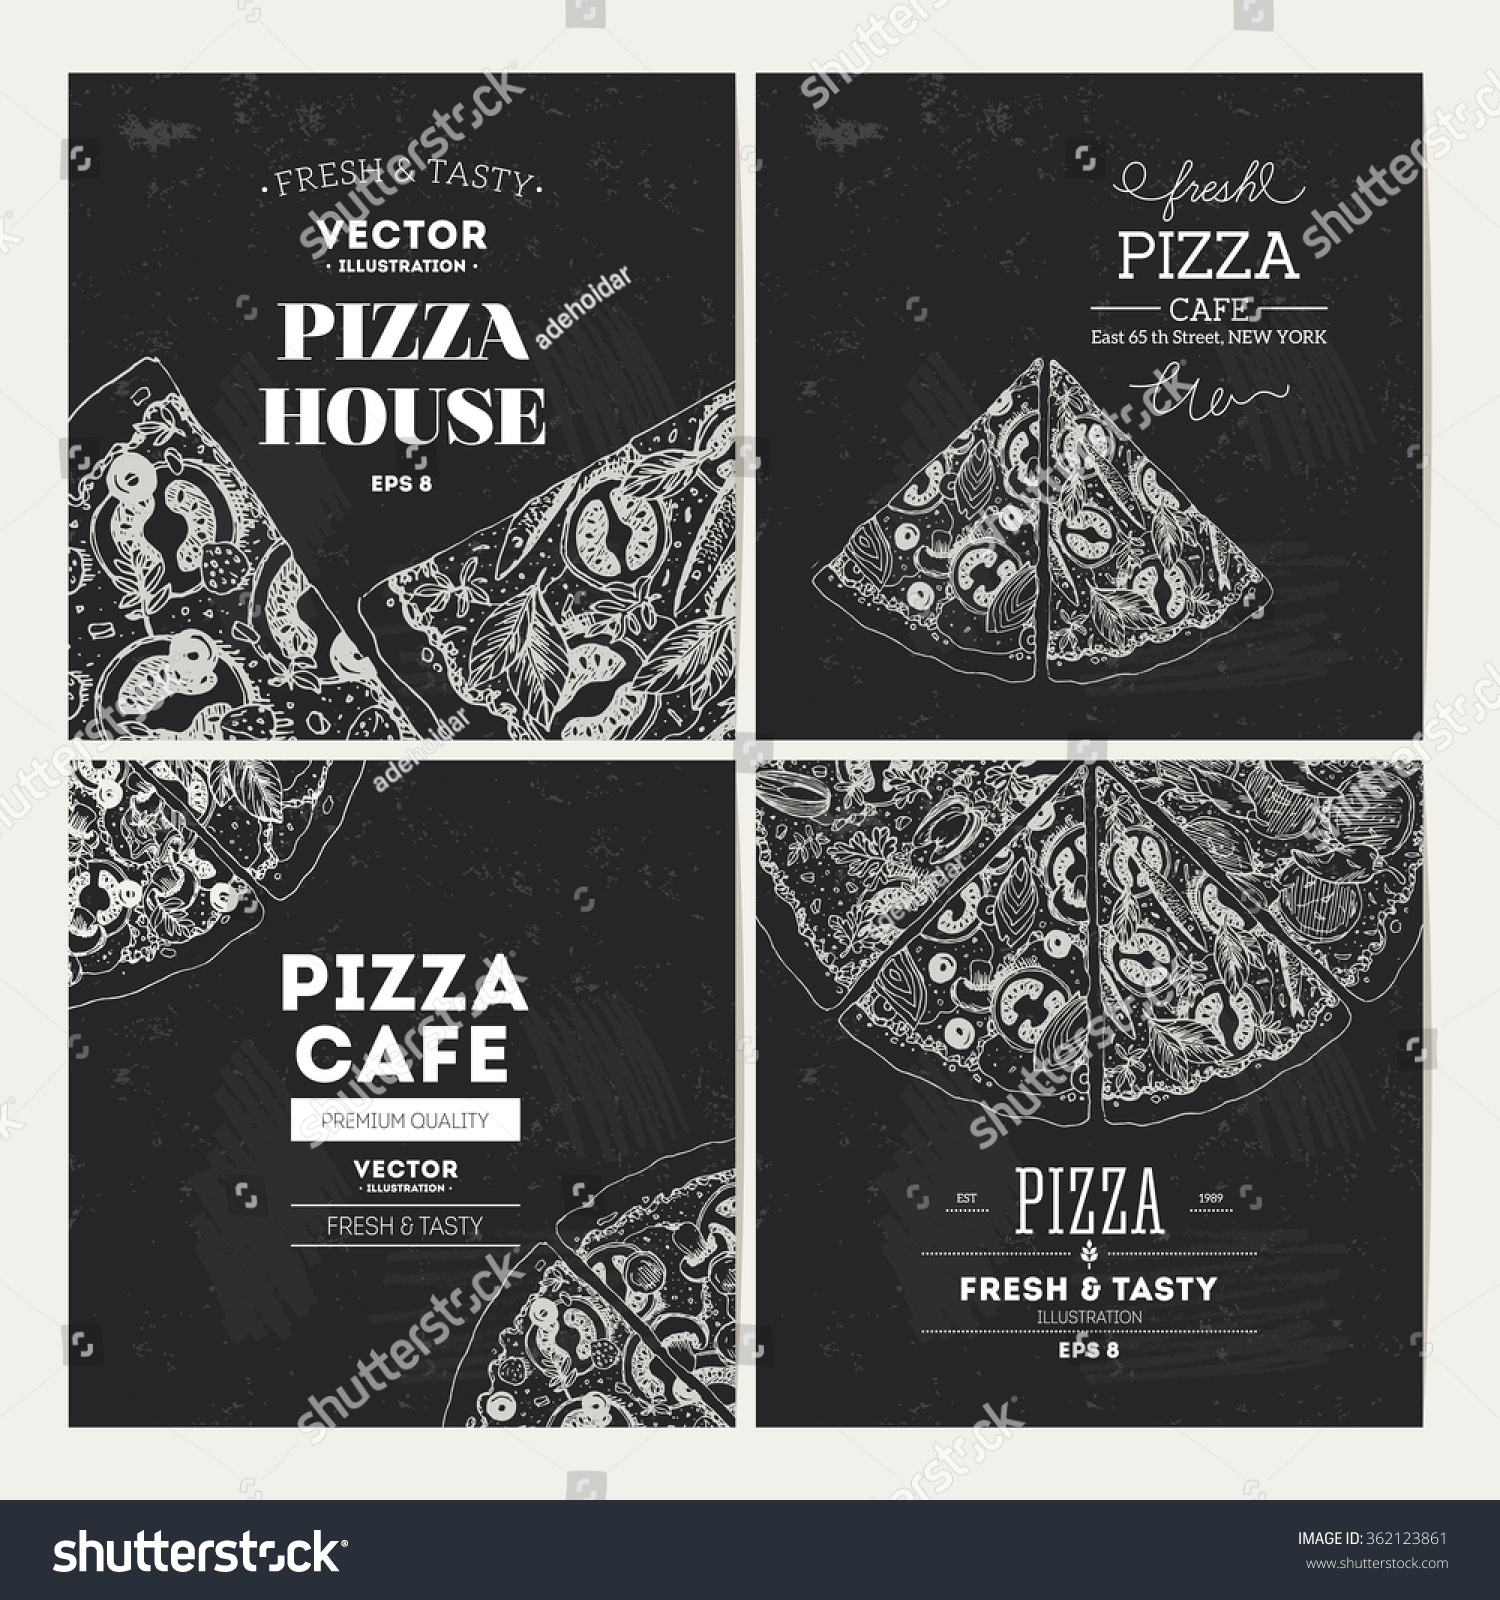 Pizza Banner Chalkboard Design Template Collection Vector Illustration